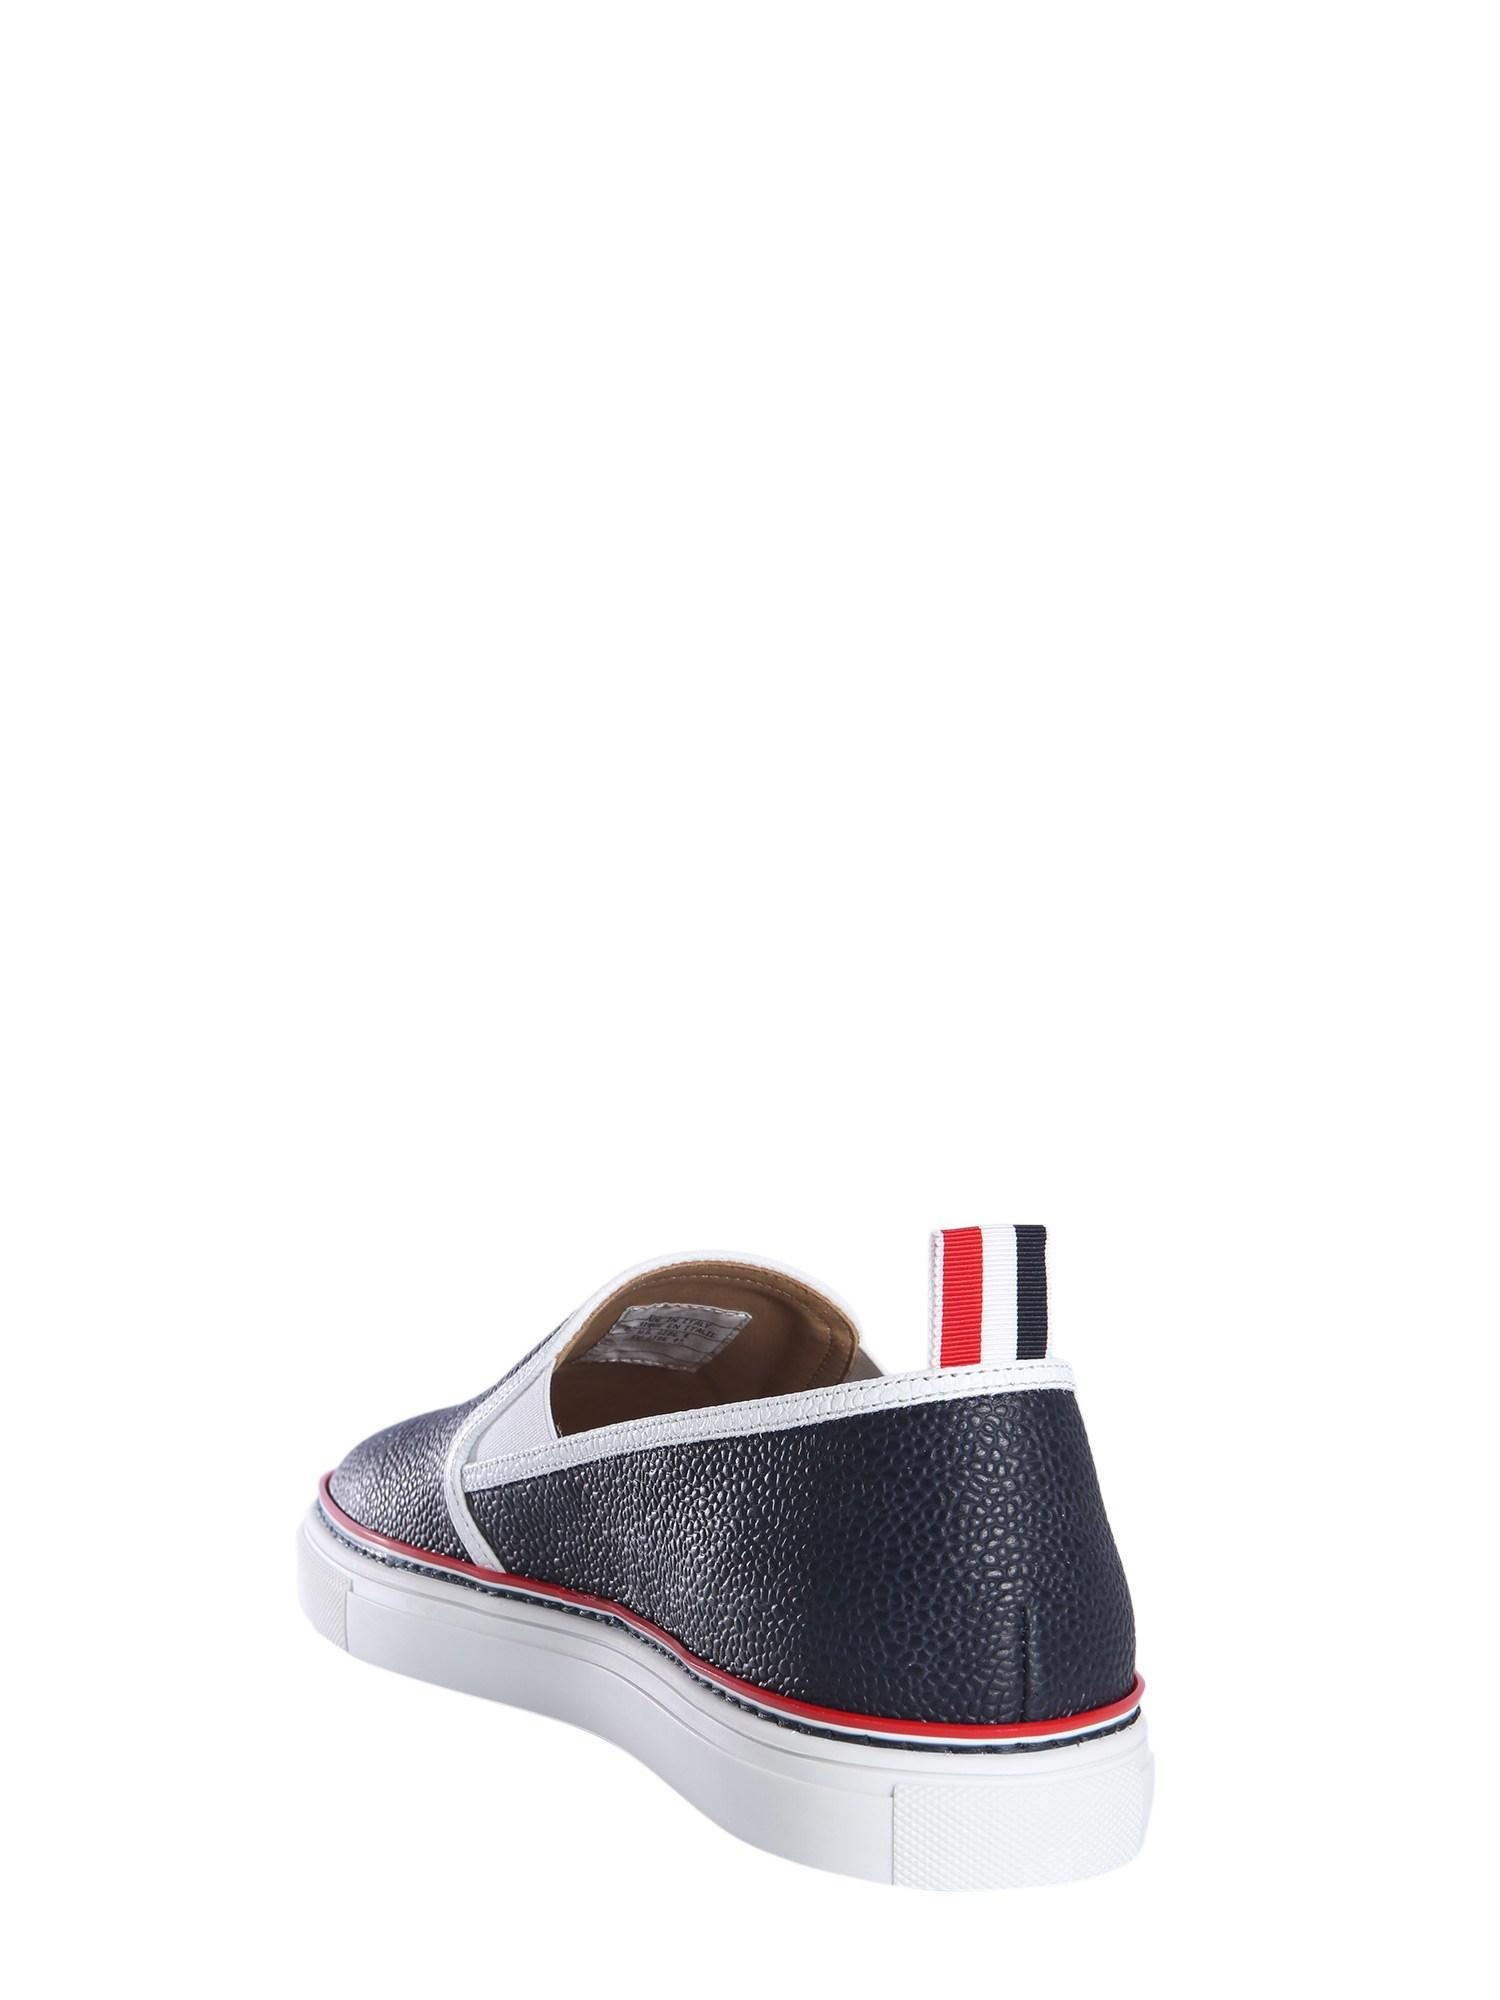 87d01dc9dc8 Lyst - Thom Browne Slip-on Leather Sneakers in Blue for Men